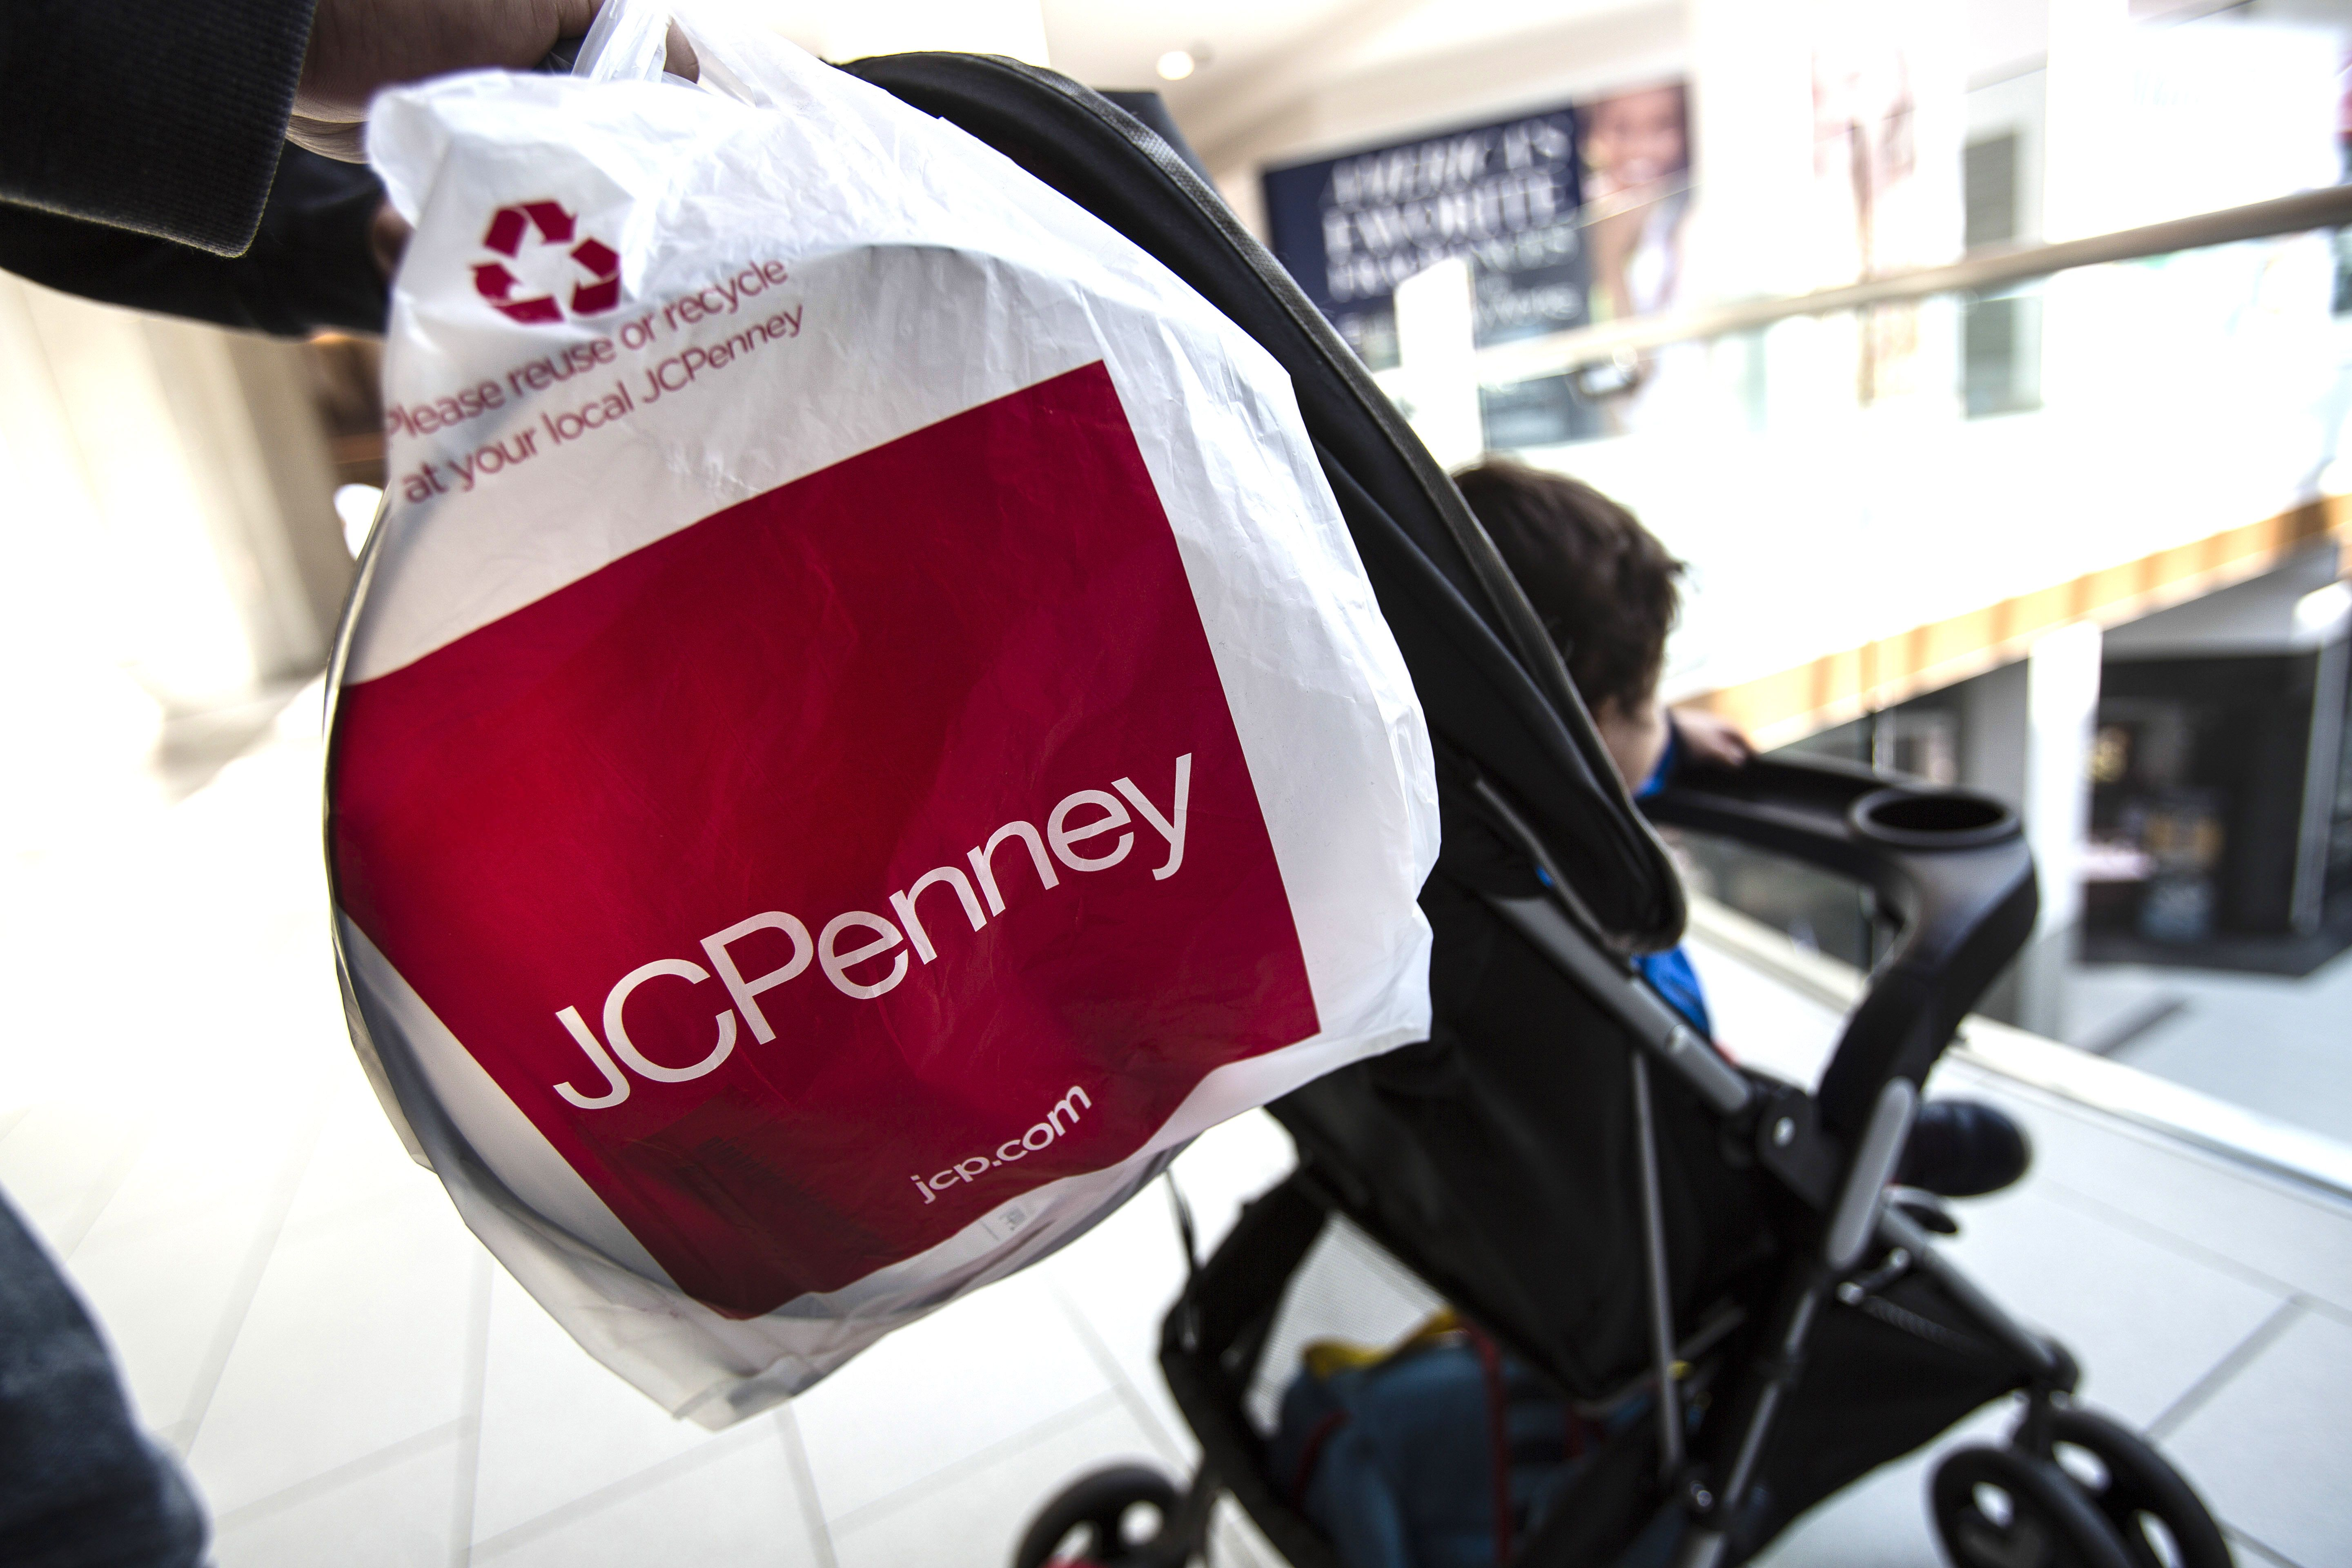 J.C. Penney CEO Warns Sears: Were Coming for Your Appliance Business via BudrickBundy #news #worldnews